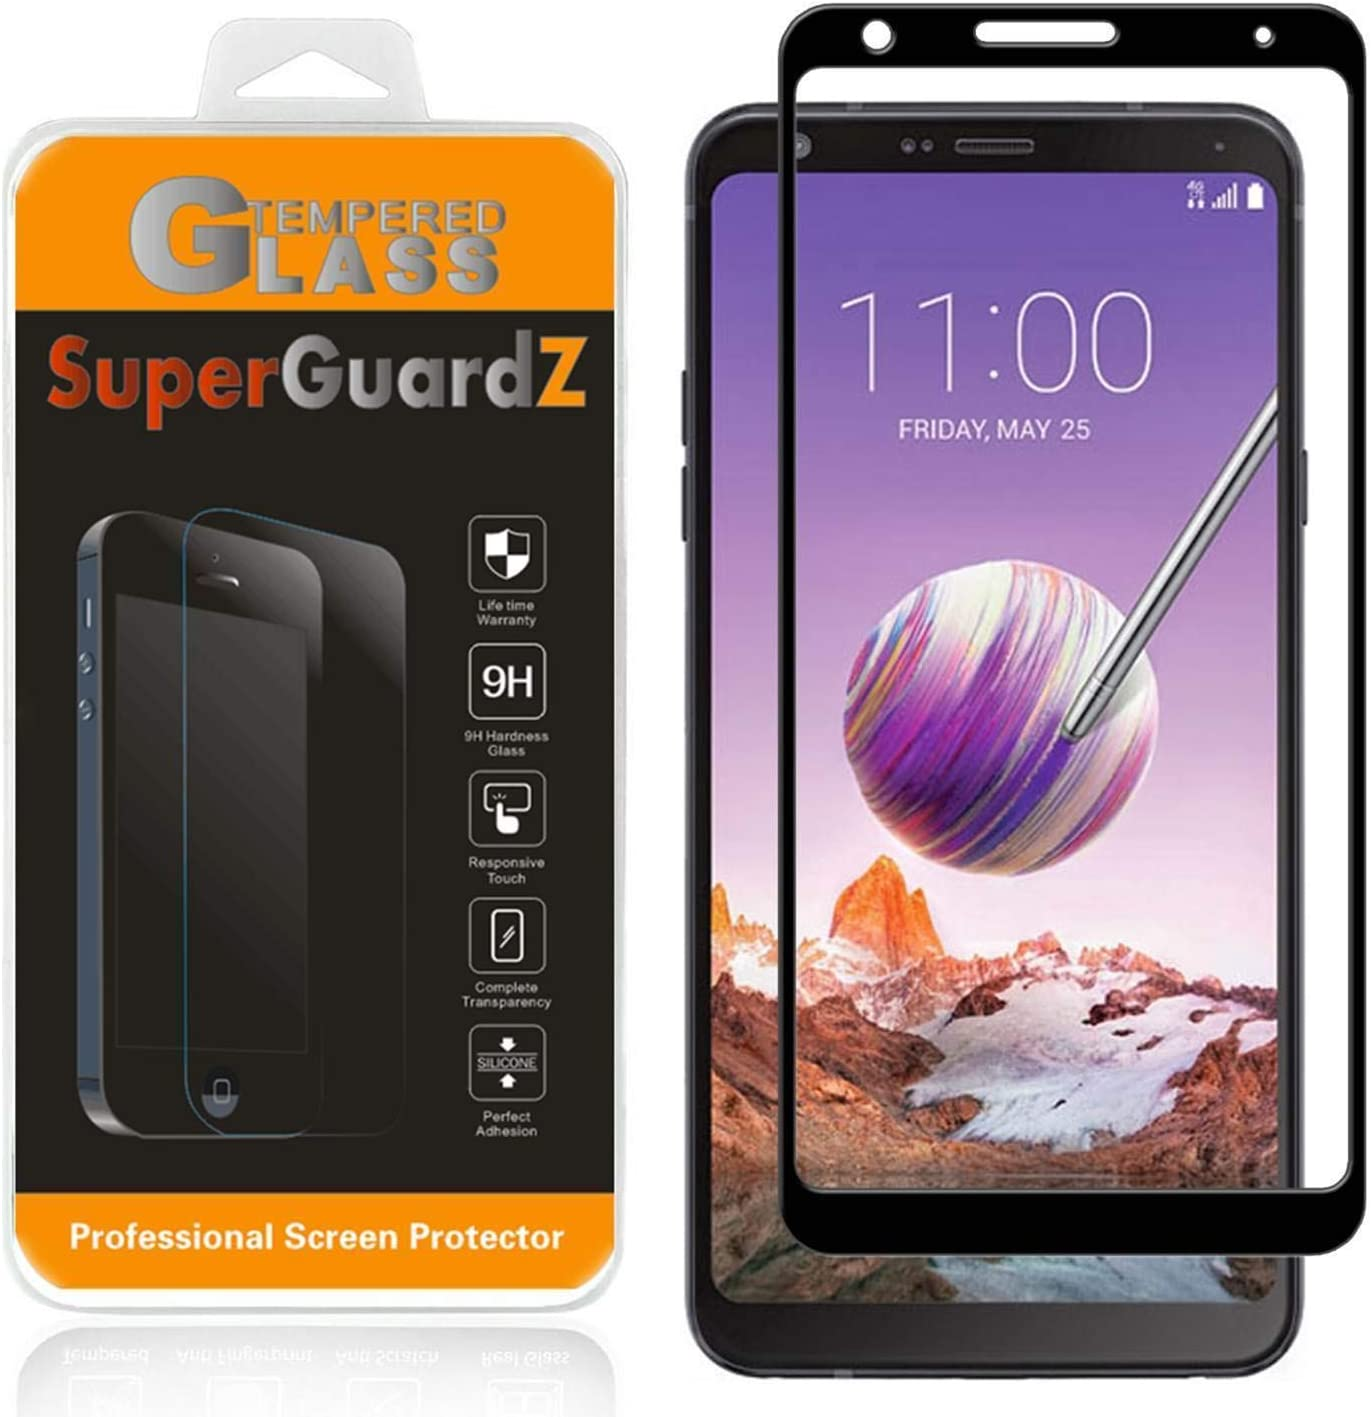 [2-Pack] LG Stylo 4 Screen Protector Tempered Glass [Full Coverage], SuperGuardZ, Edge-to-Edge, Anti-Scratch, Anti-Bubble [Lifetime Replacement]